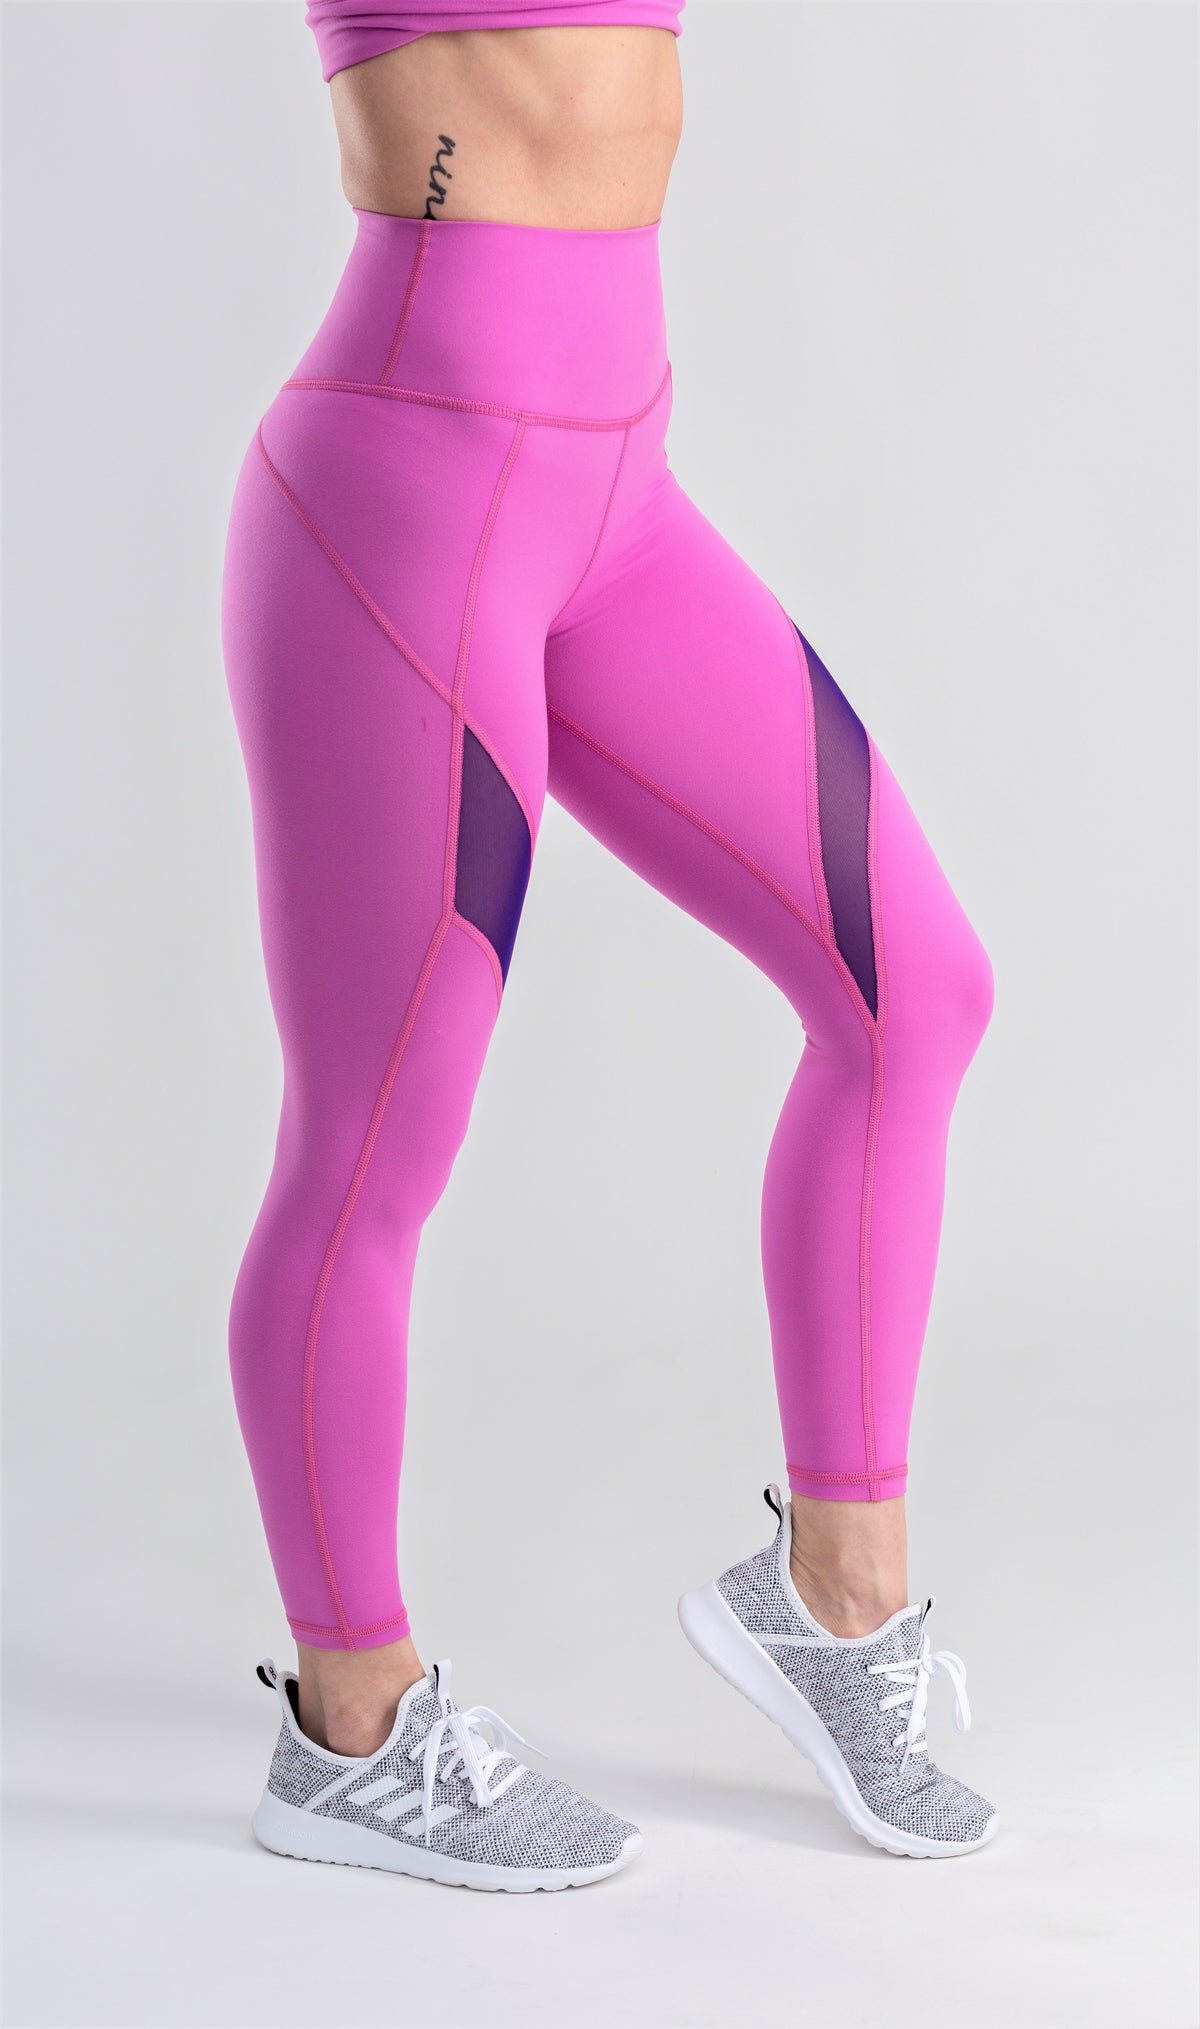 Pink mesh leggings